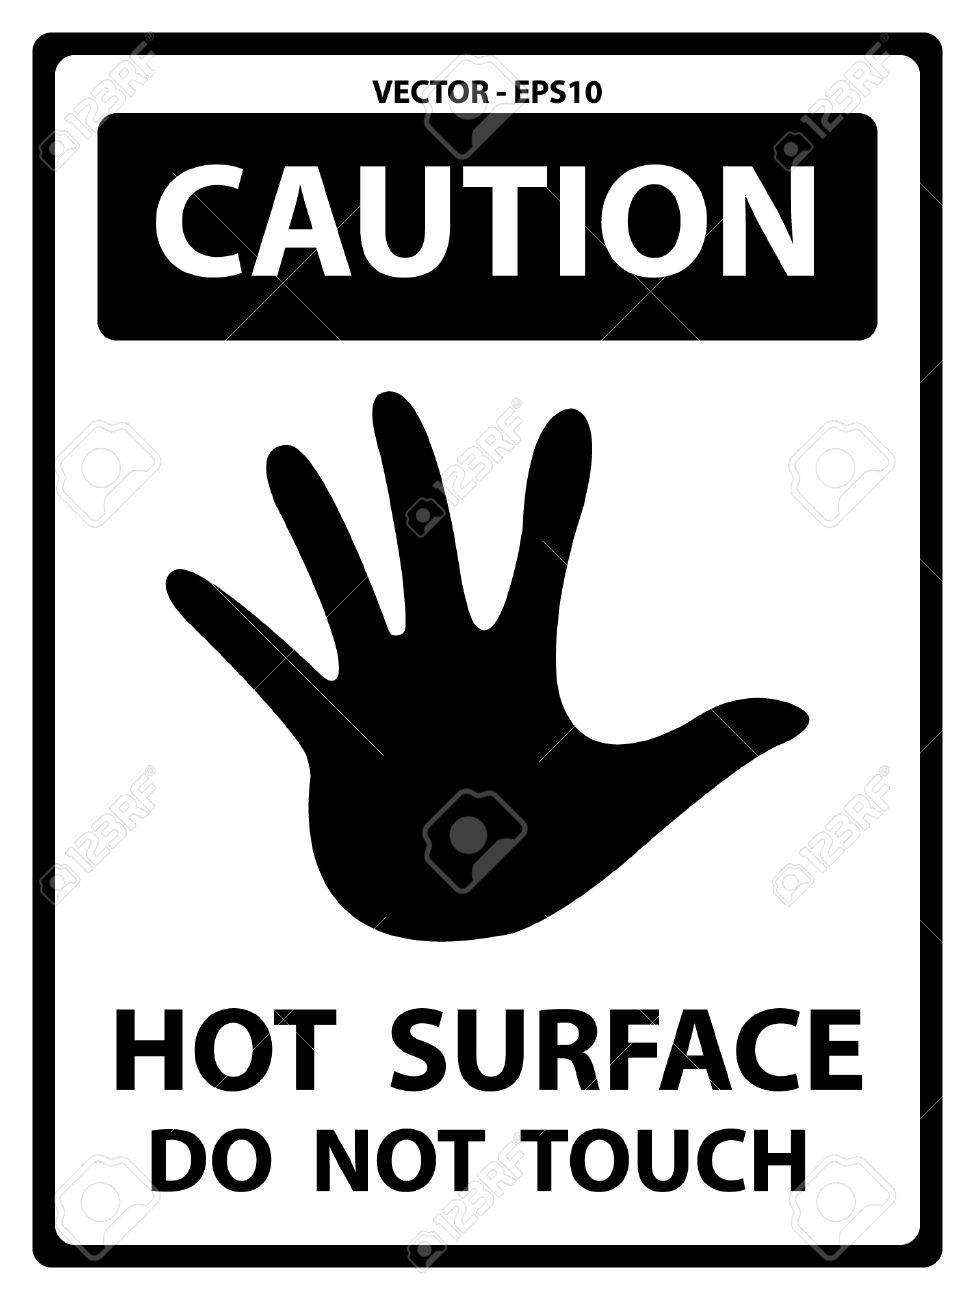 Black and white caution plate for safety present by hot surface black and white caution plate for safety present by hot surface do not touch text with biocorpaavc